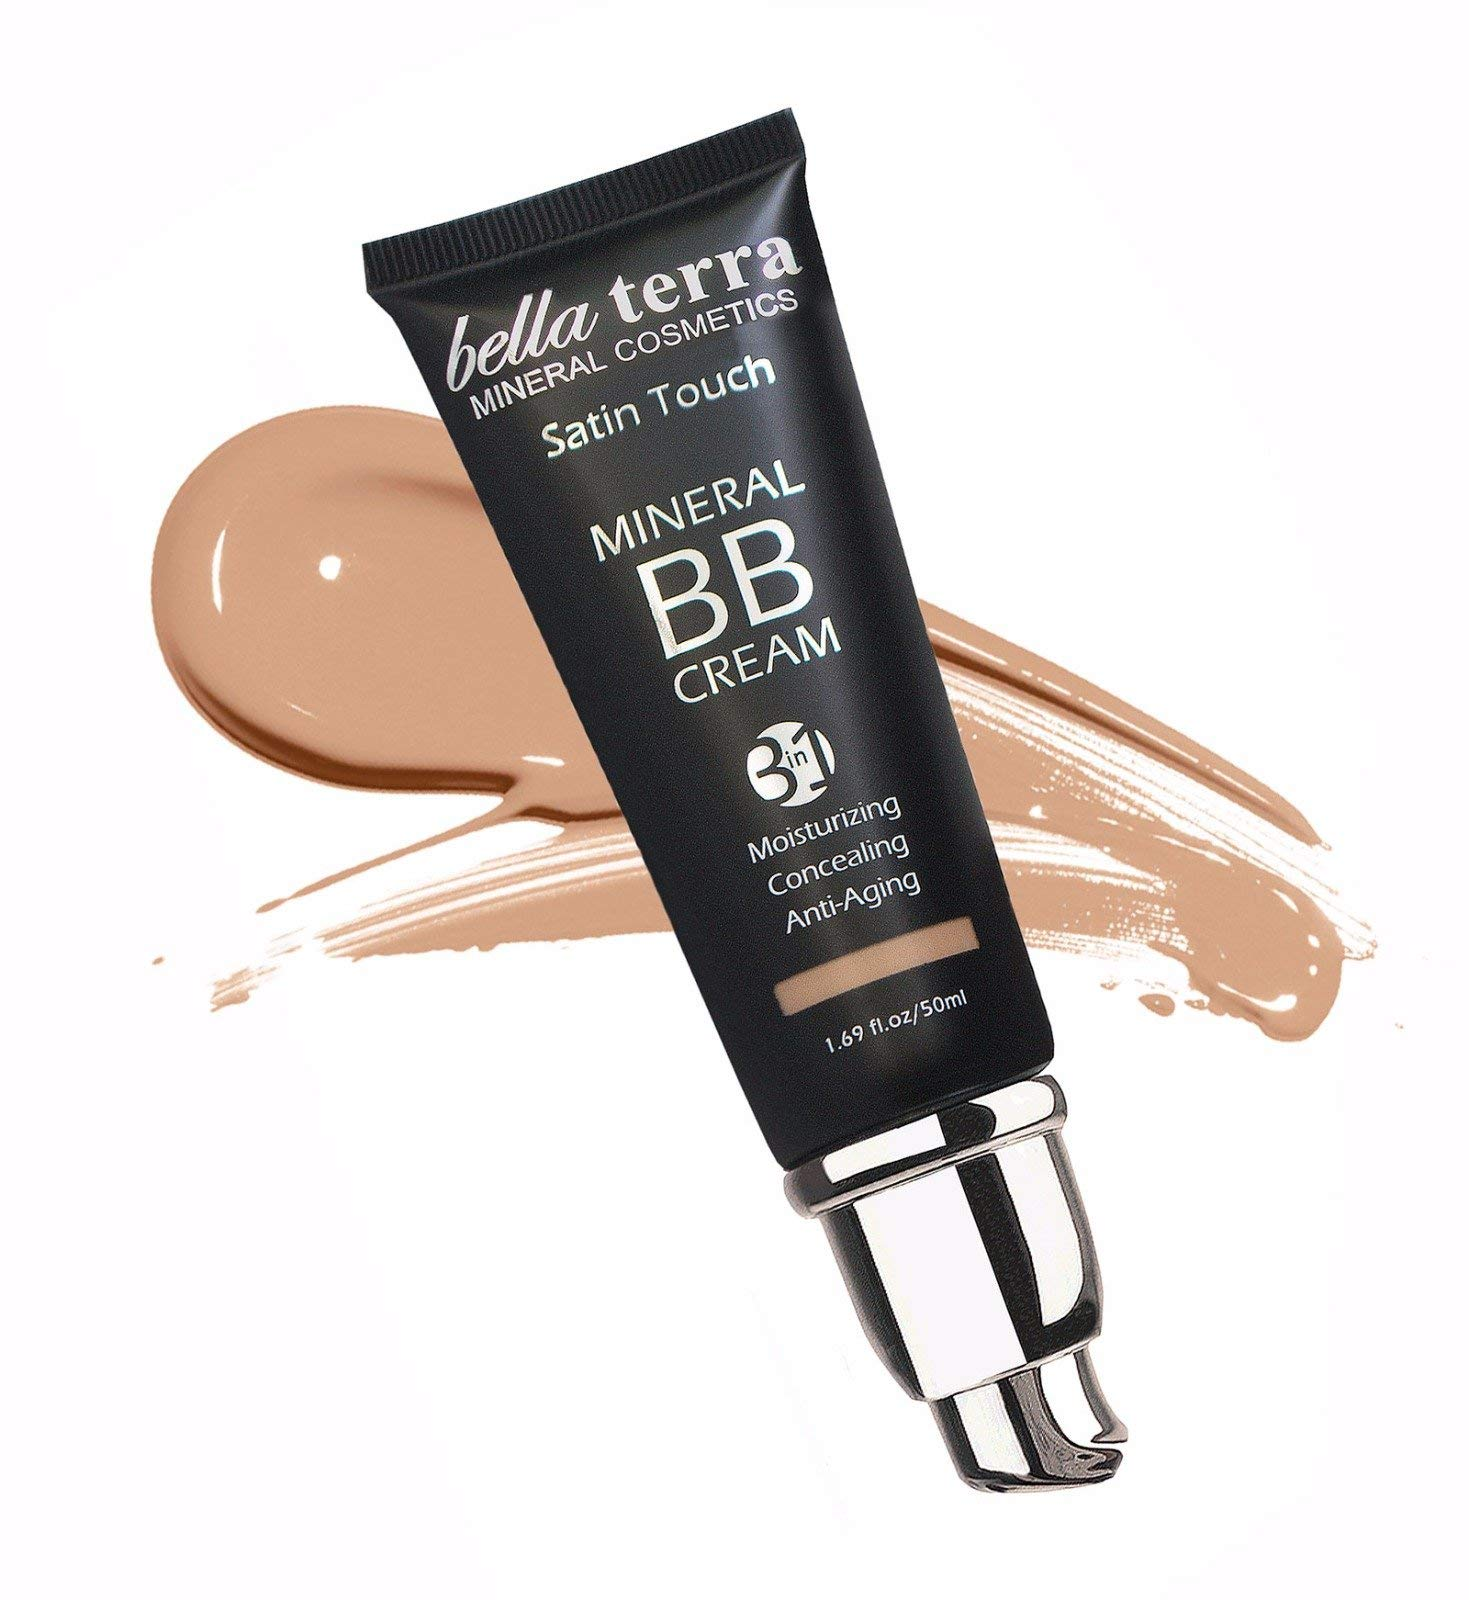 BB Cream Matte finish 3-in-1 Mineral Makeup Foundation - Tinted Moisturizer - Concealer - Satin touch - Light to Dark Skin Tones - Natural SPF - Hypoallergenic (1.69 Oz) - Medium 104 by Bella Terra by Bella Terra Cosmetics